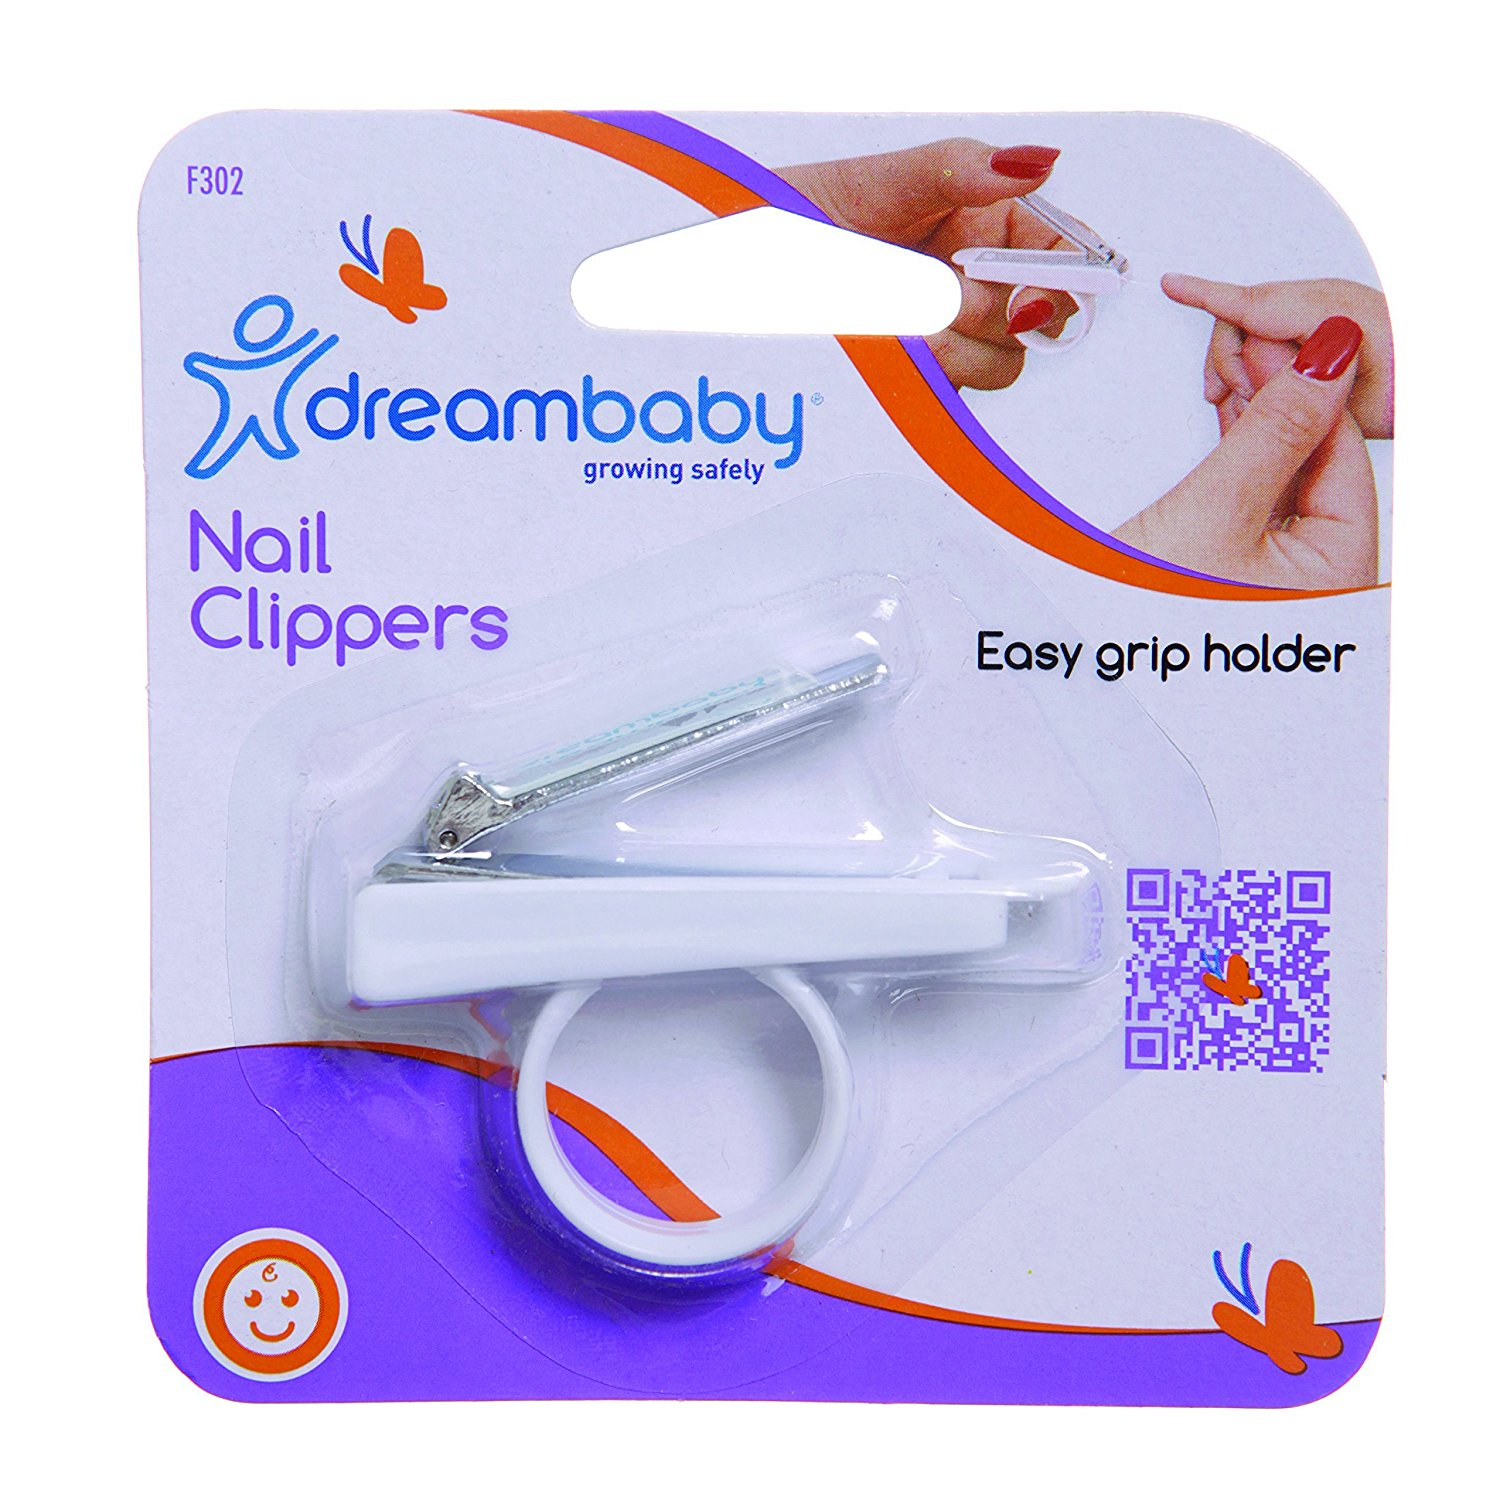 Dreambaby Nail Clippers F302